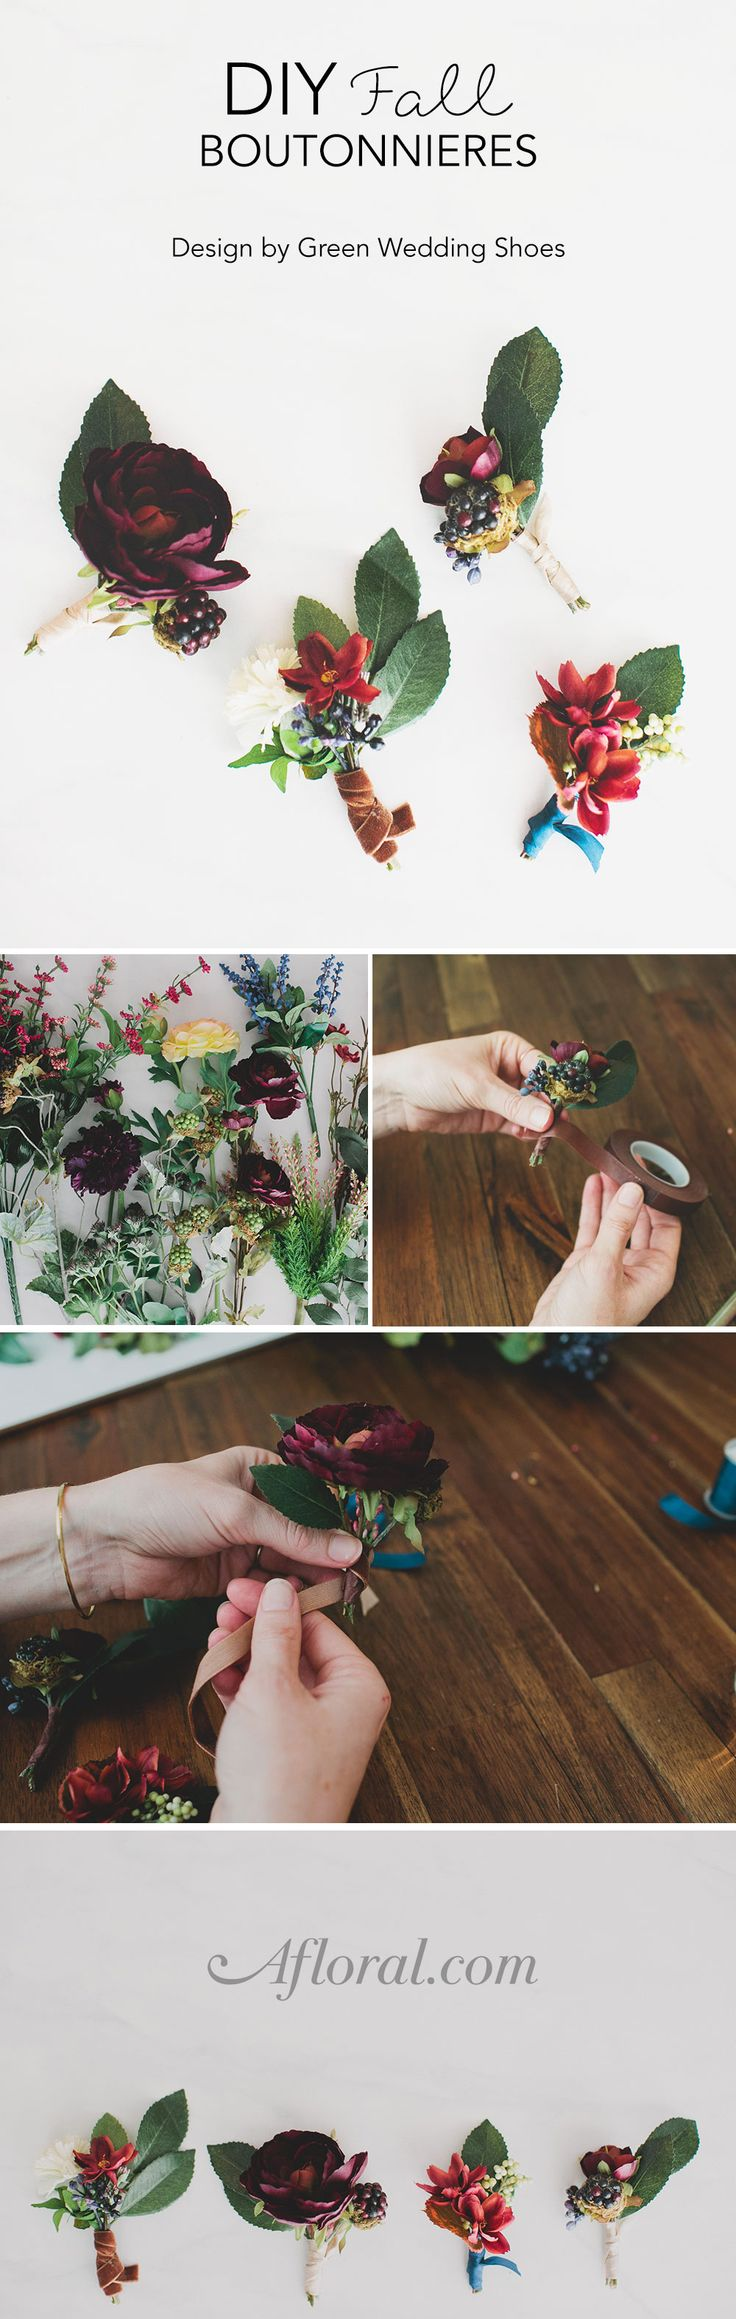 Learn how to make boutonnieres for your fall wedding with silk flowers from afloral.com. Design by Green Wedding Shoes. #diywedding